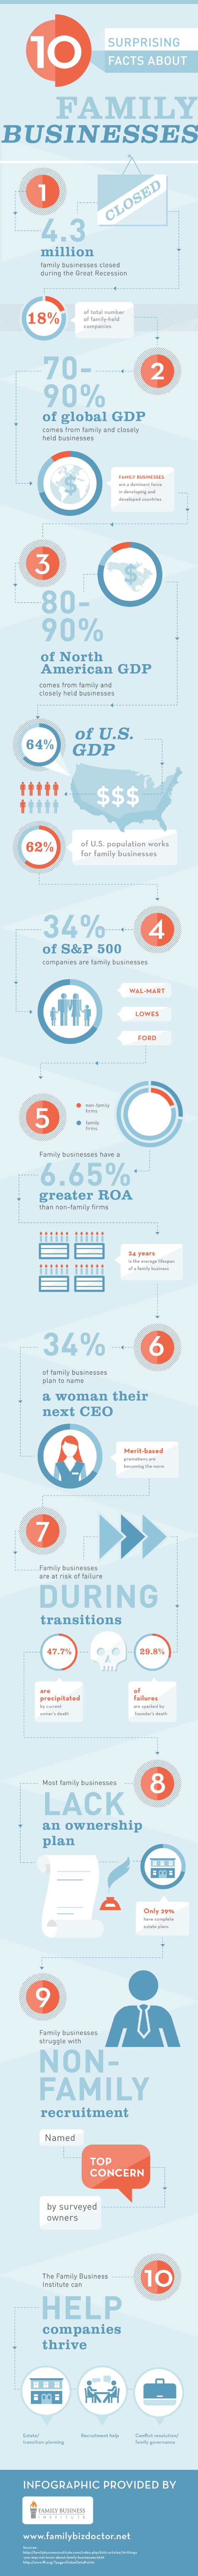 10 Surprising Facts about Family Businesses